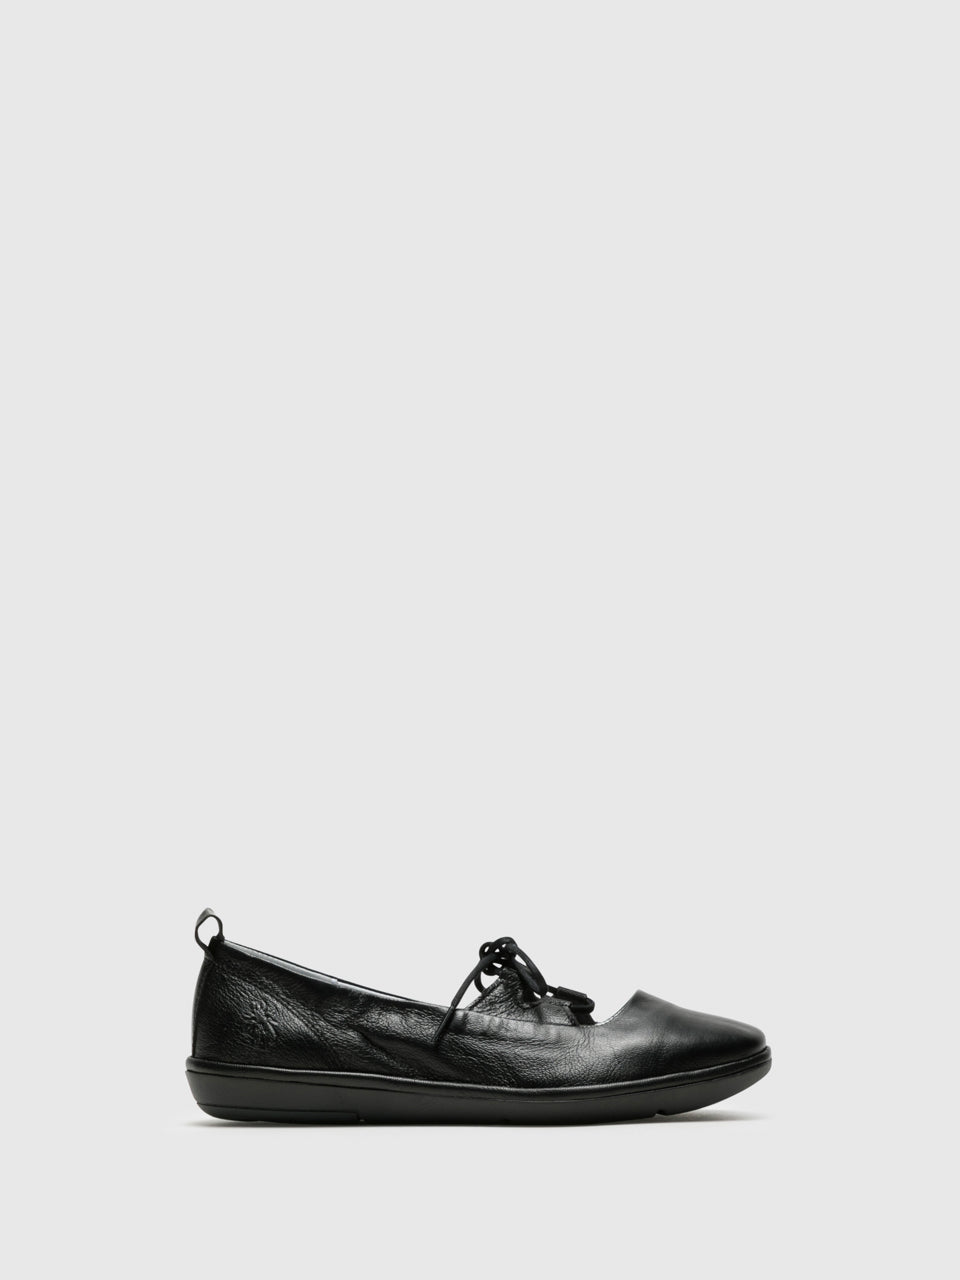 Fly London Black Lace-up Ballerinas